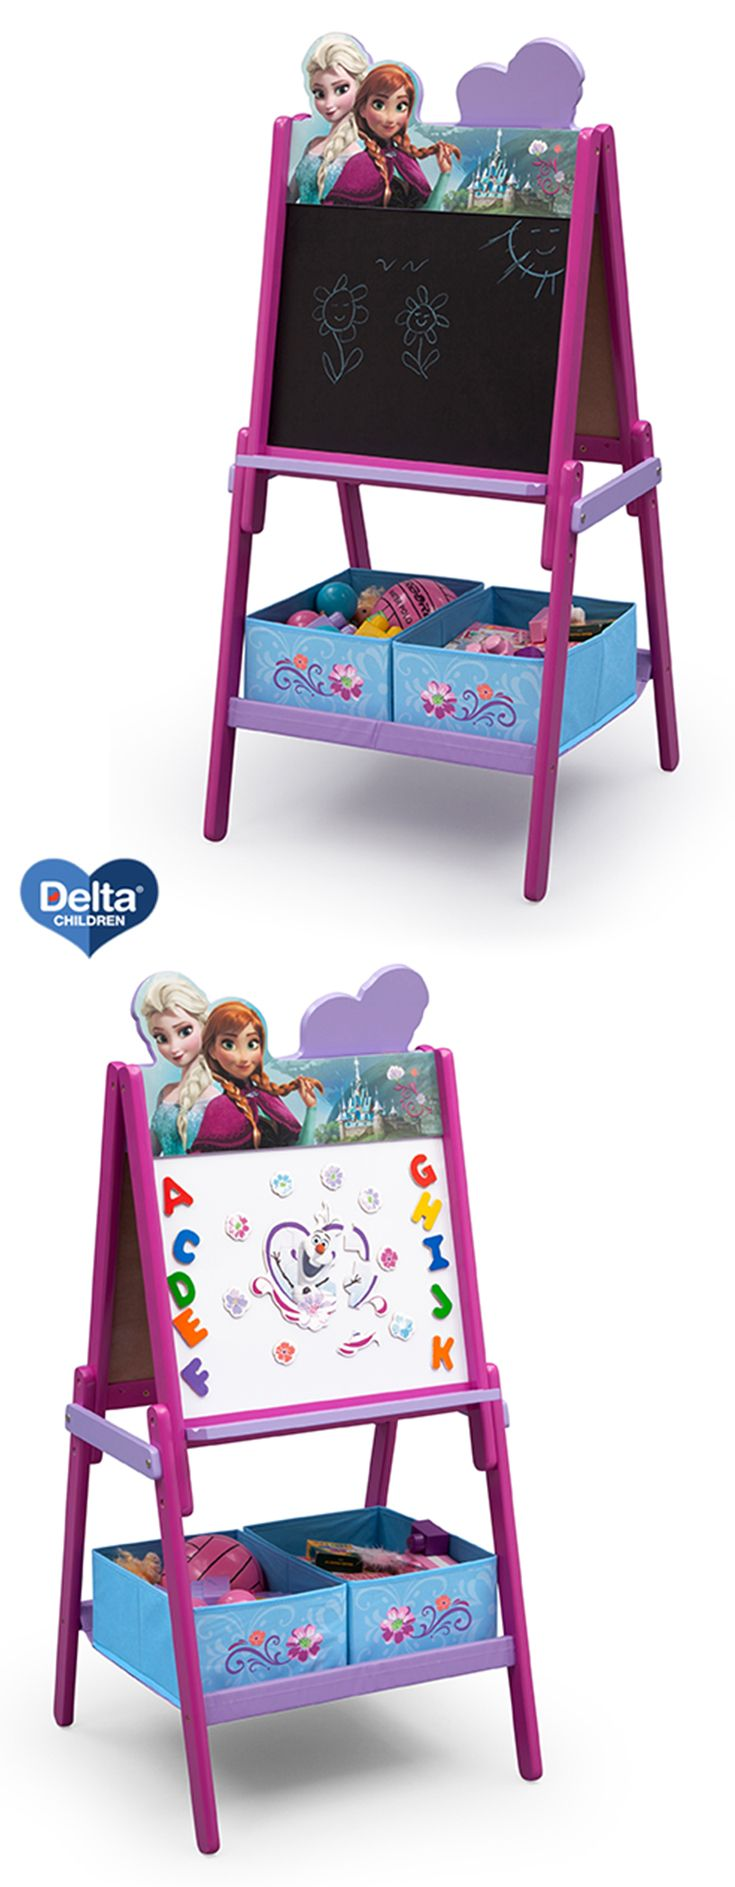 Unique detachable side rail with dear kids letter idea feat cool - Sure To Inspire The Sweetest Sketches This Frozen Wooden Double Sided Activity Easel With Storage From Delta Children Is Designed With A Magnetic